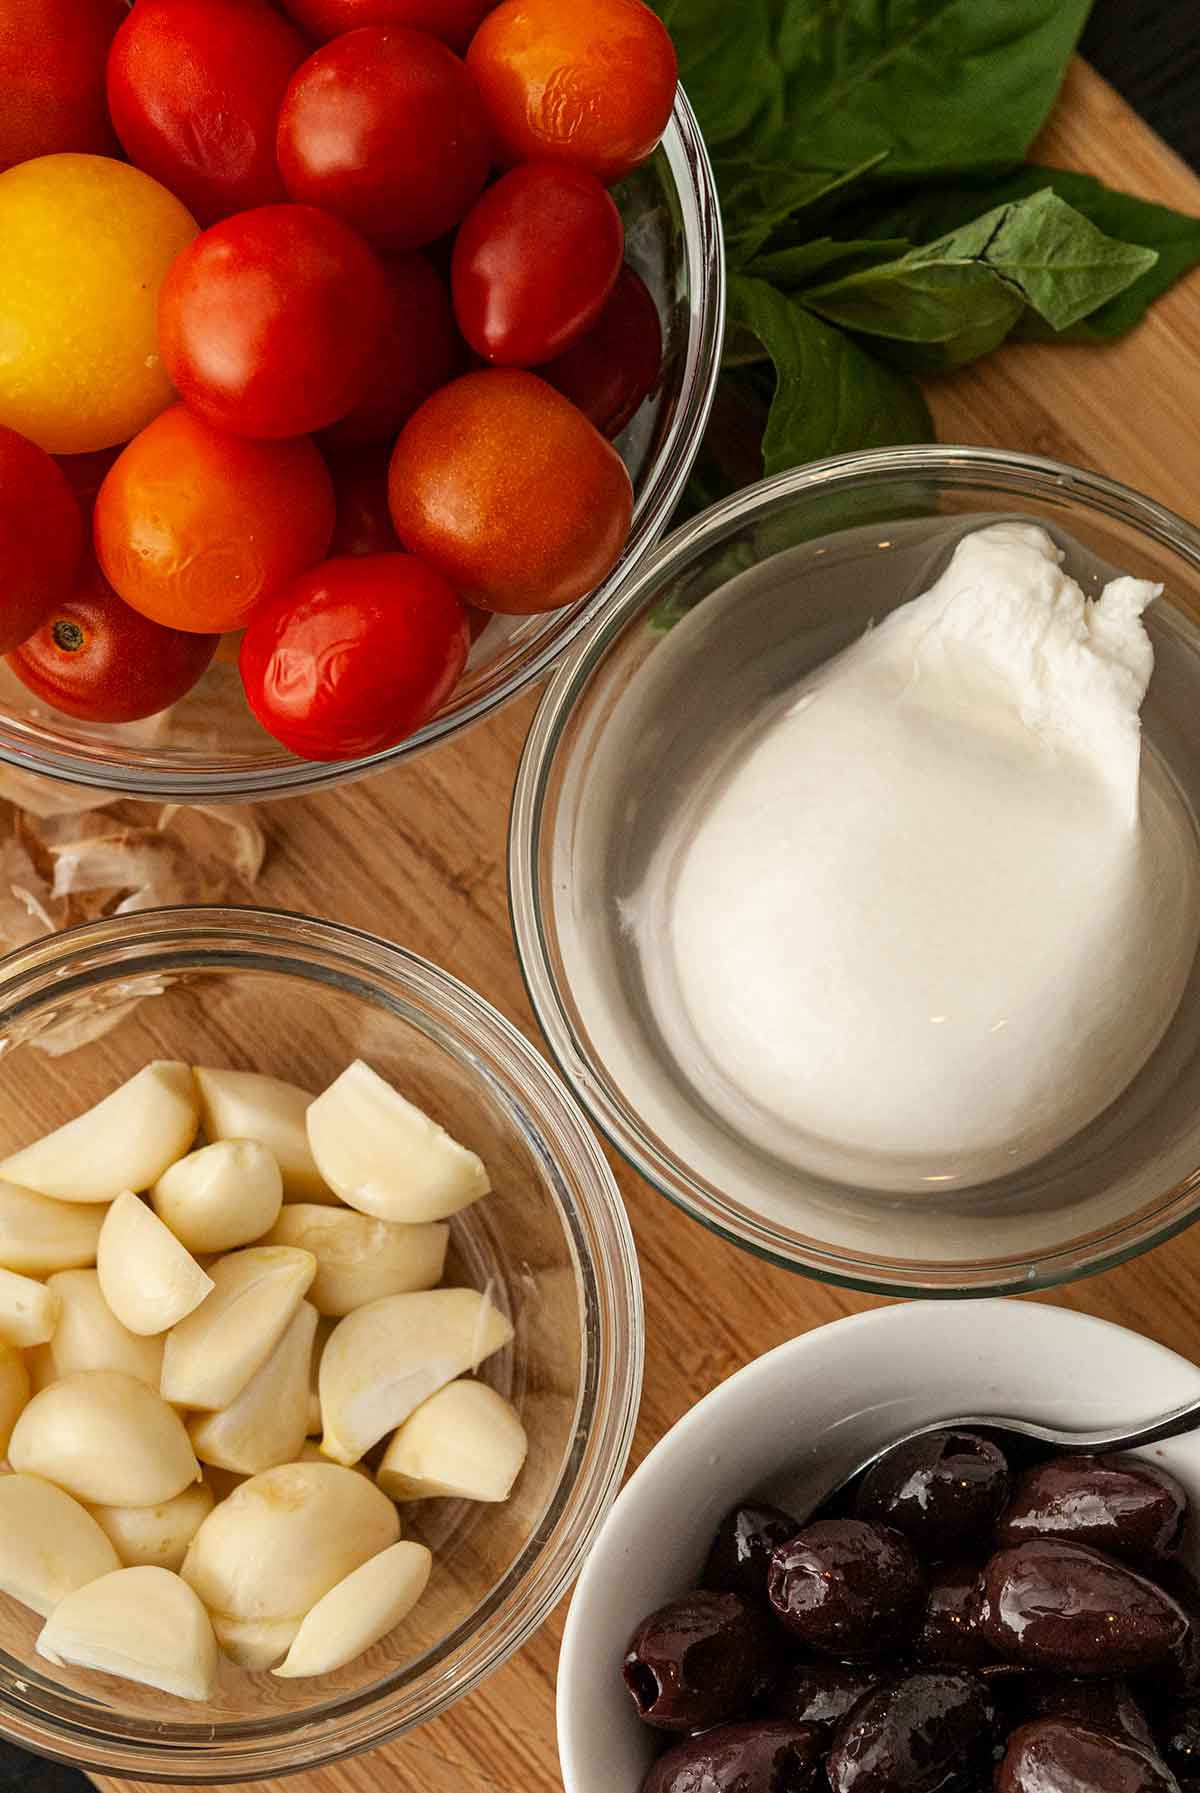 Small bowls on a wooden board with mozzarella, tomatoes, olives and garlic.